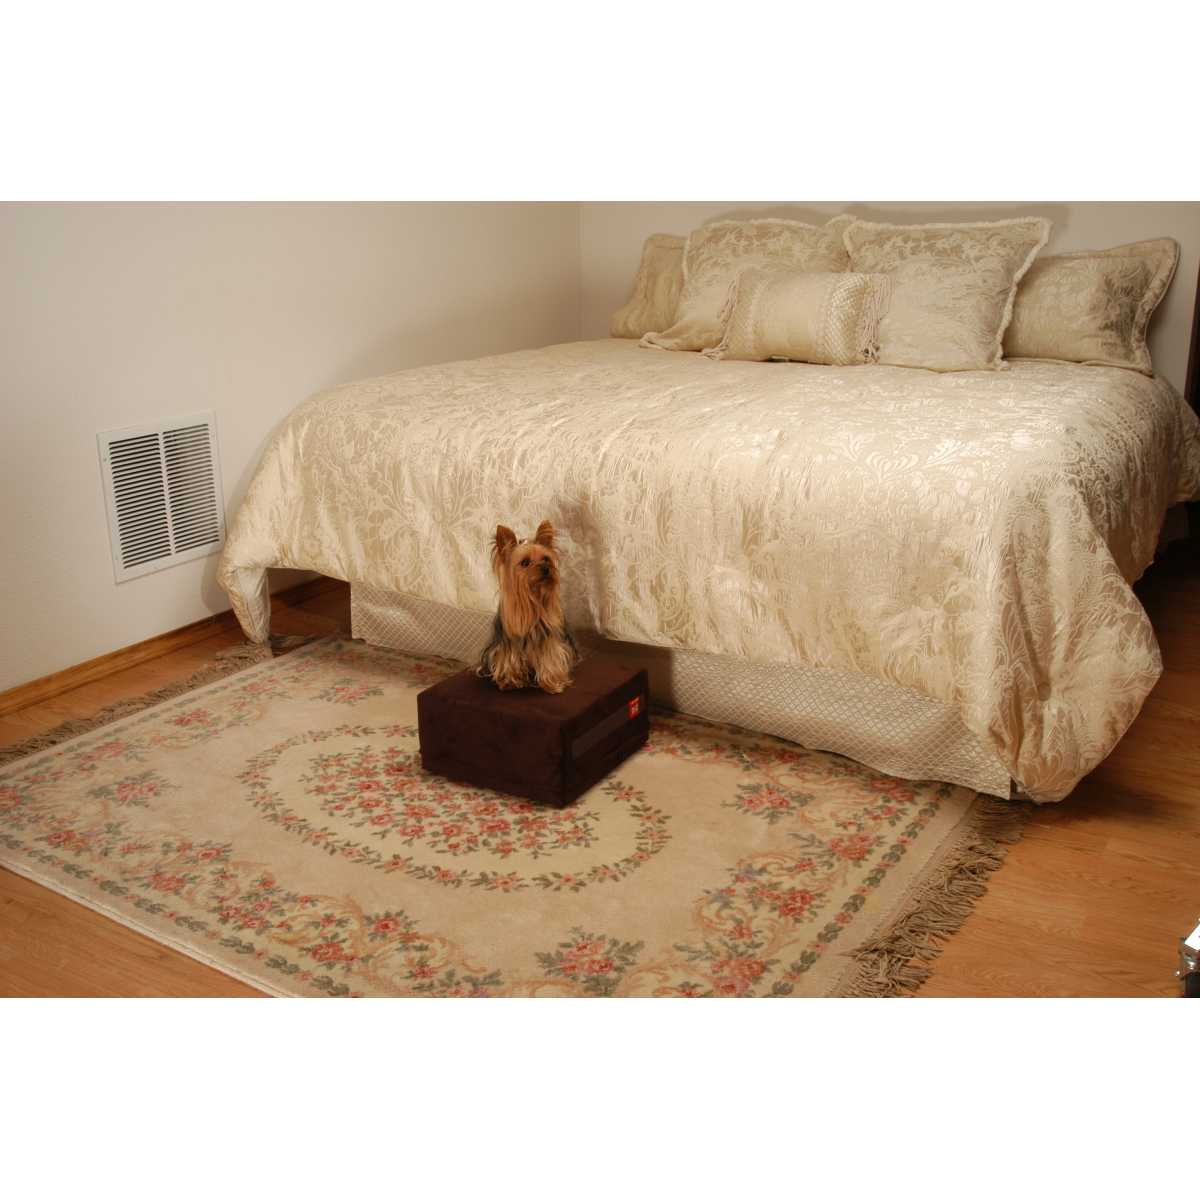 about easy details bed washable stairs tall access itm pet step couches for dog cat machine ledges